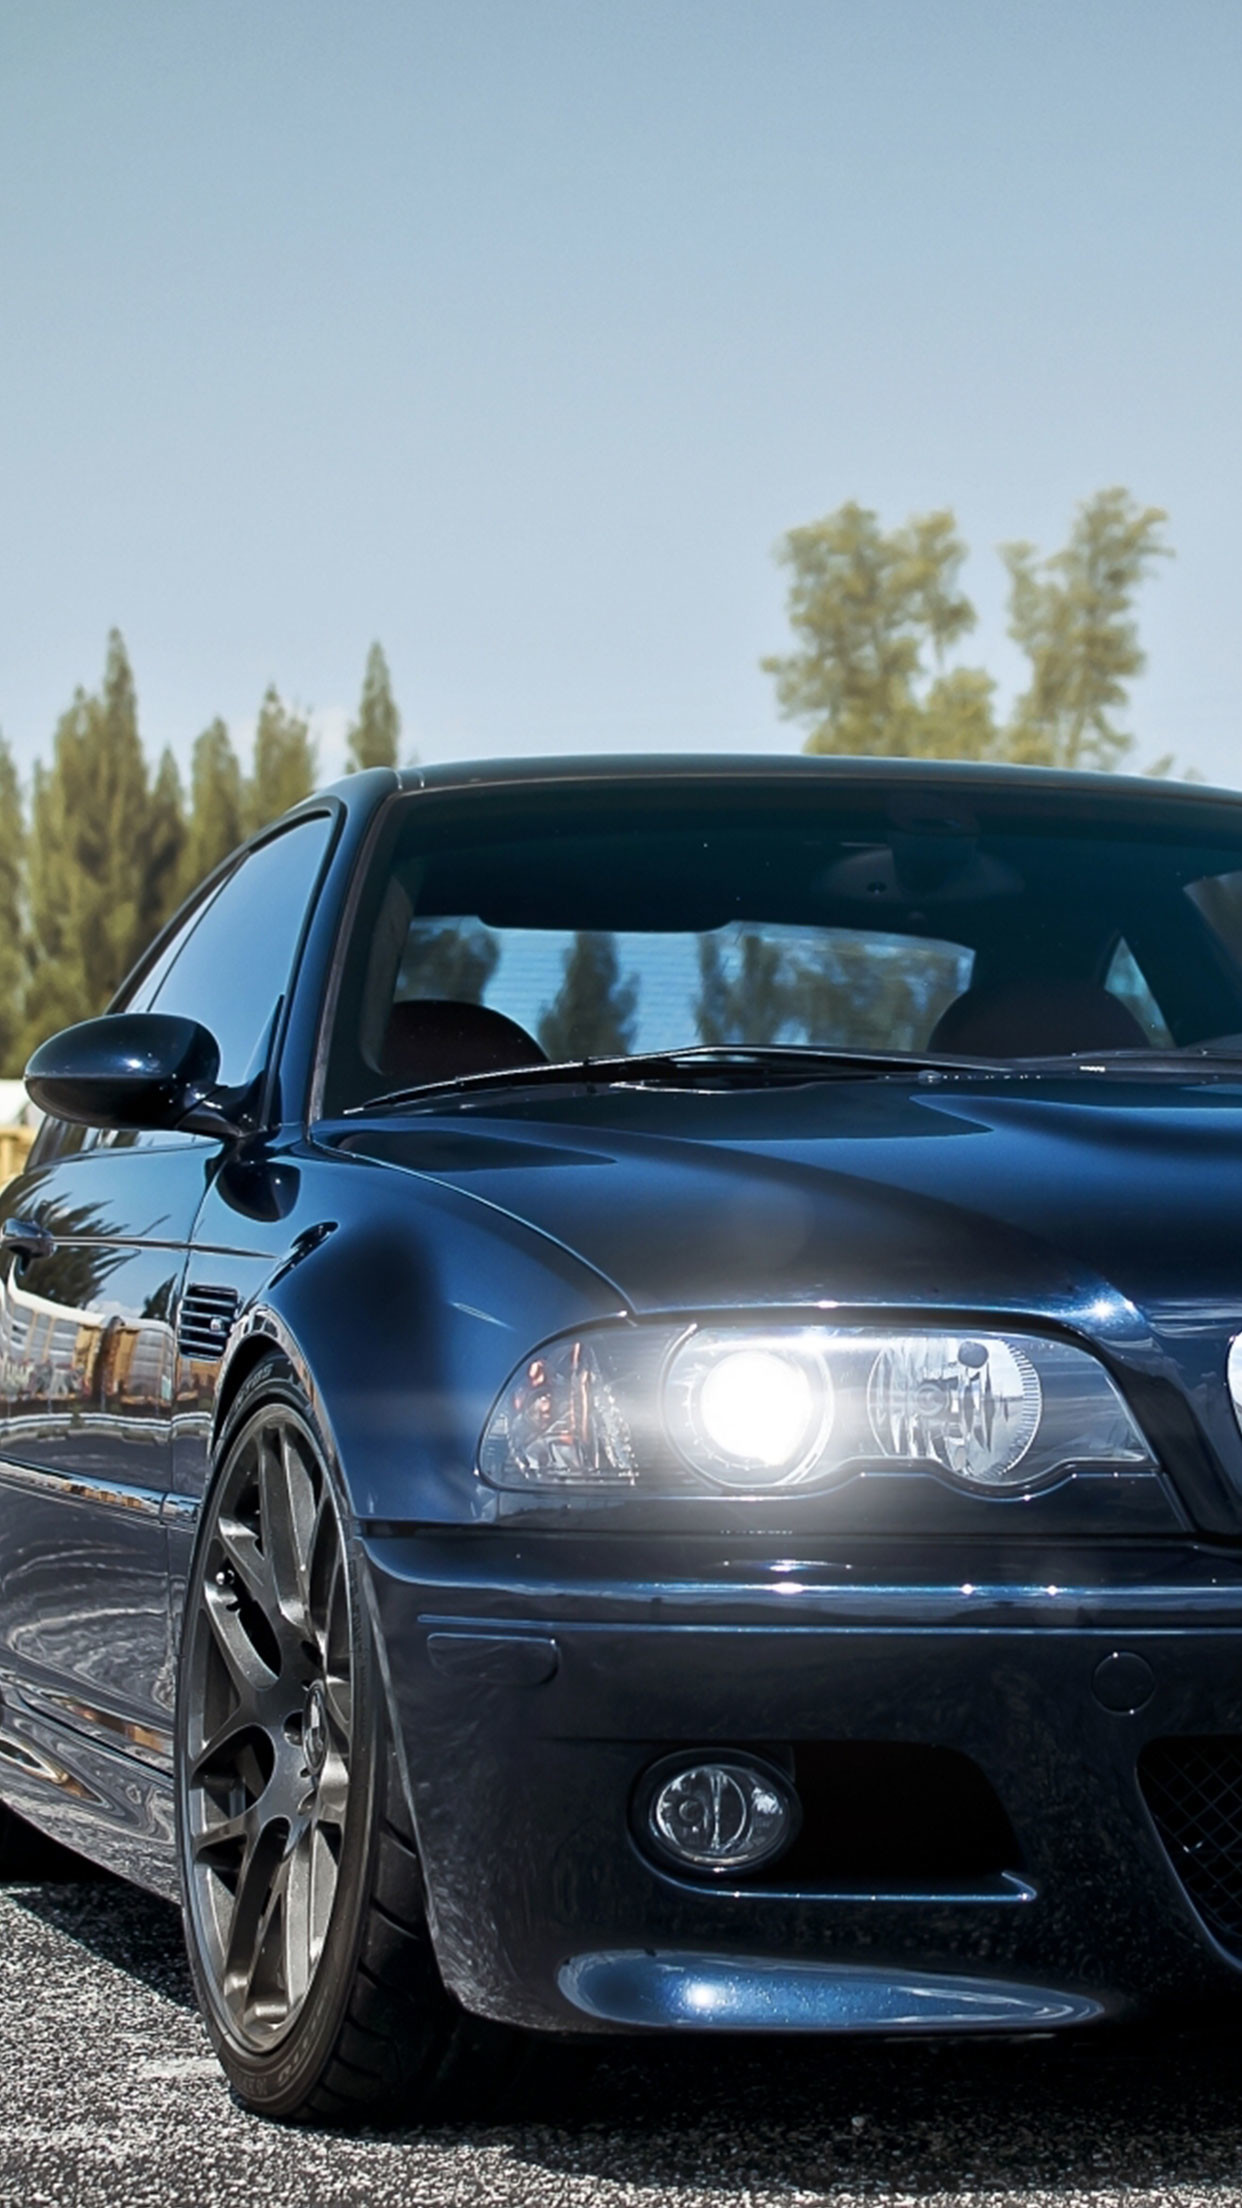 2048x1536 BMW M3 Coupe IND E46 BMW M3 Coupe IND E46 WallpapersBmw M3  Wallpaper | Bmw M3 Wallpaper